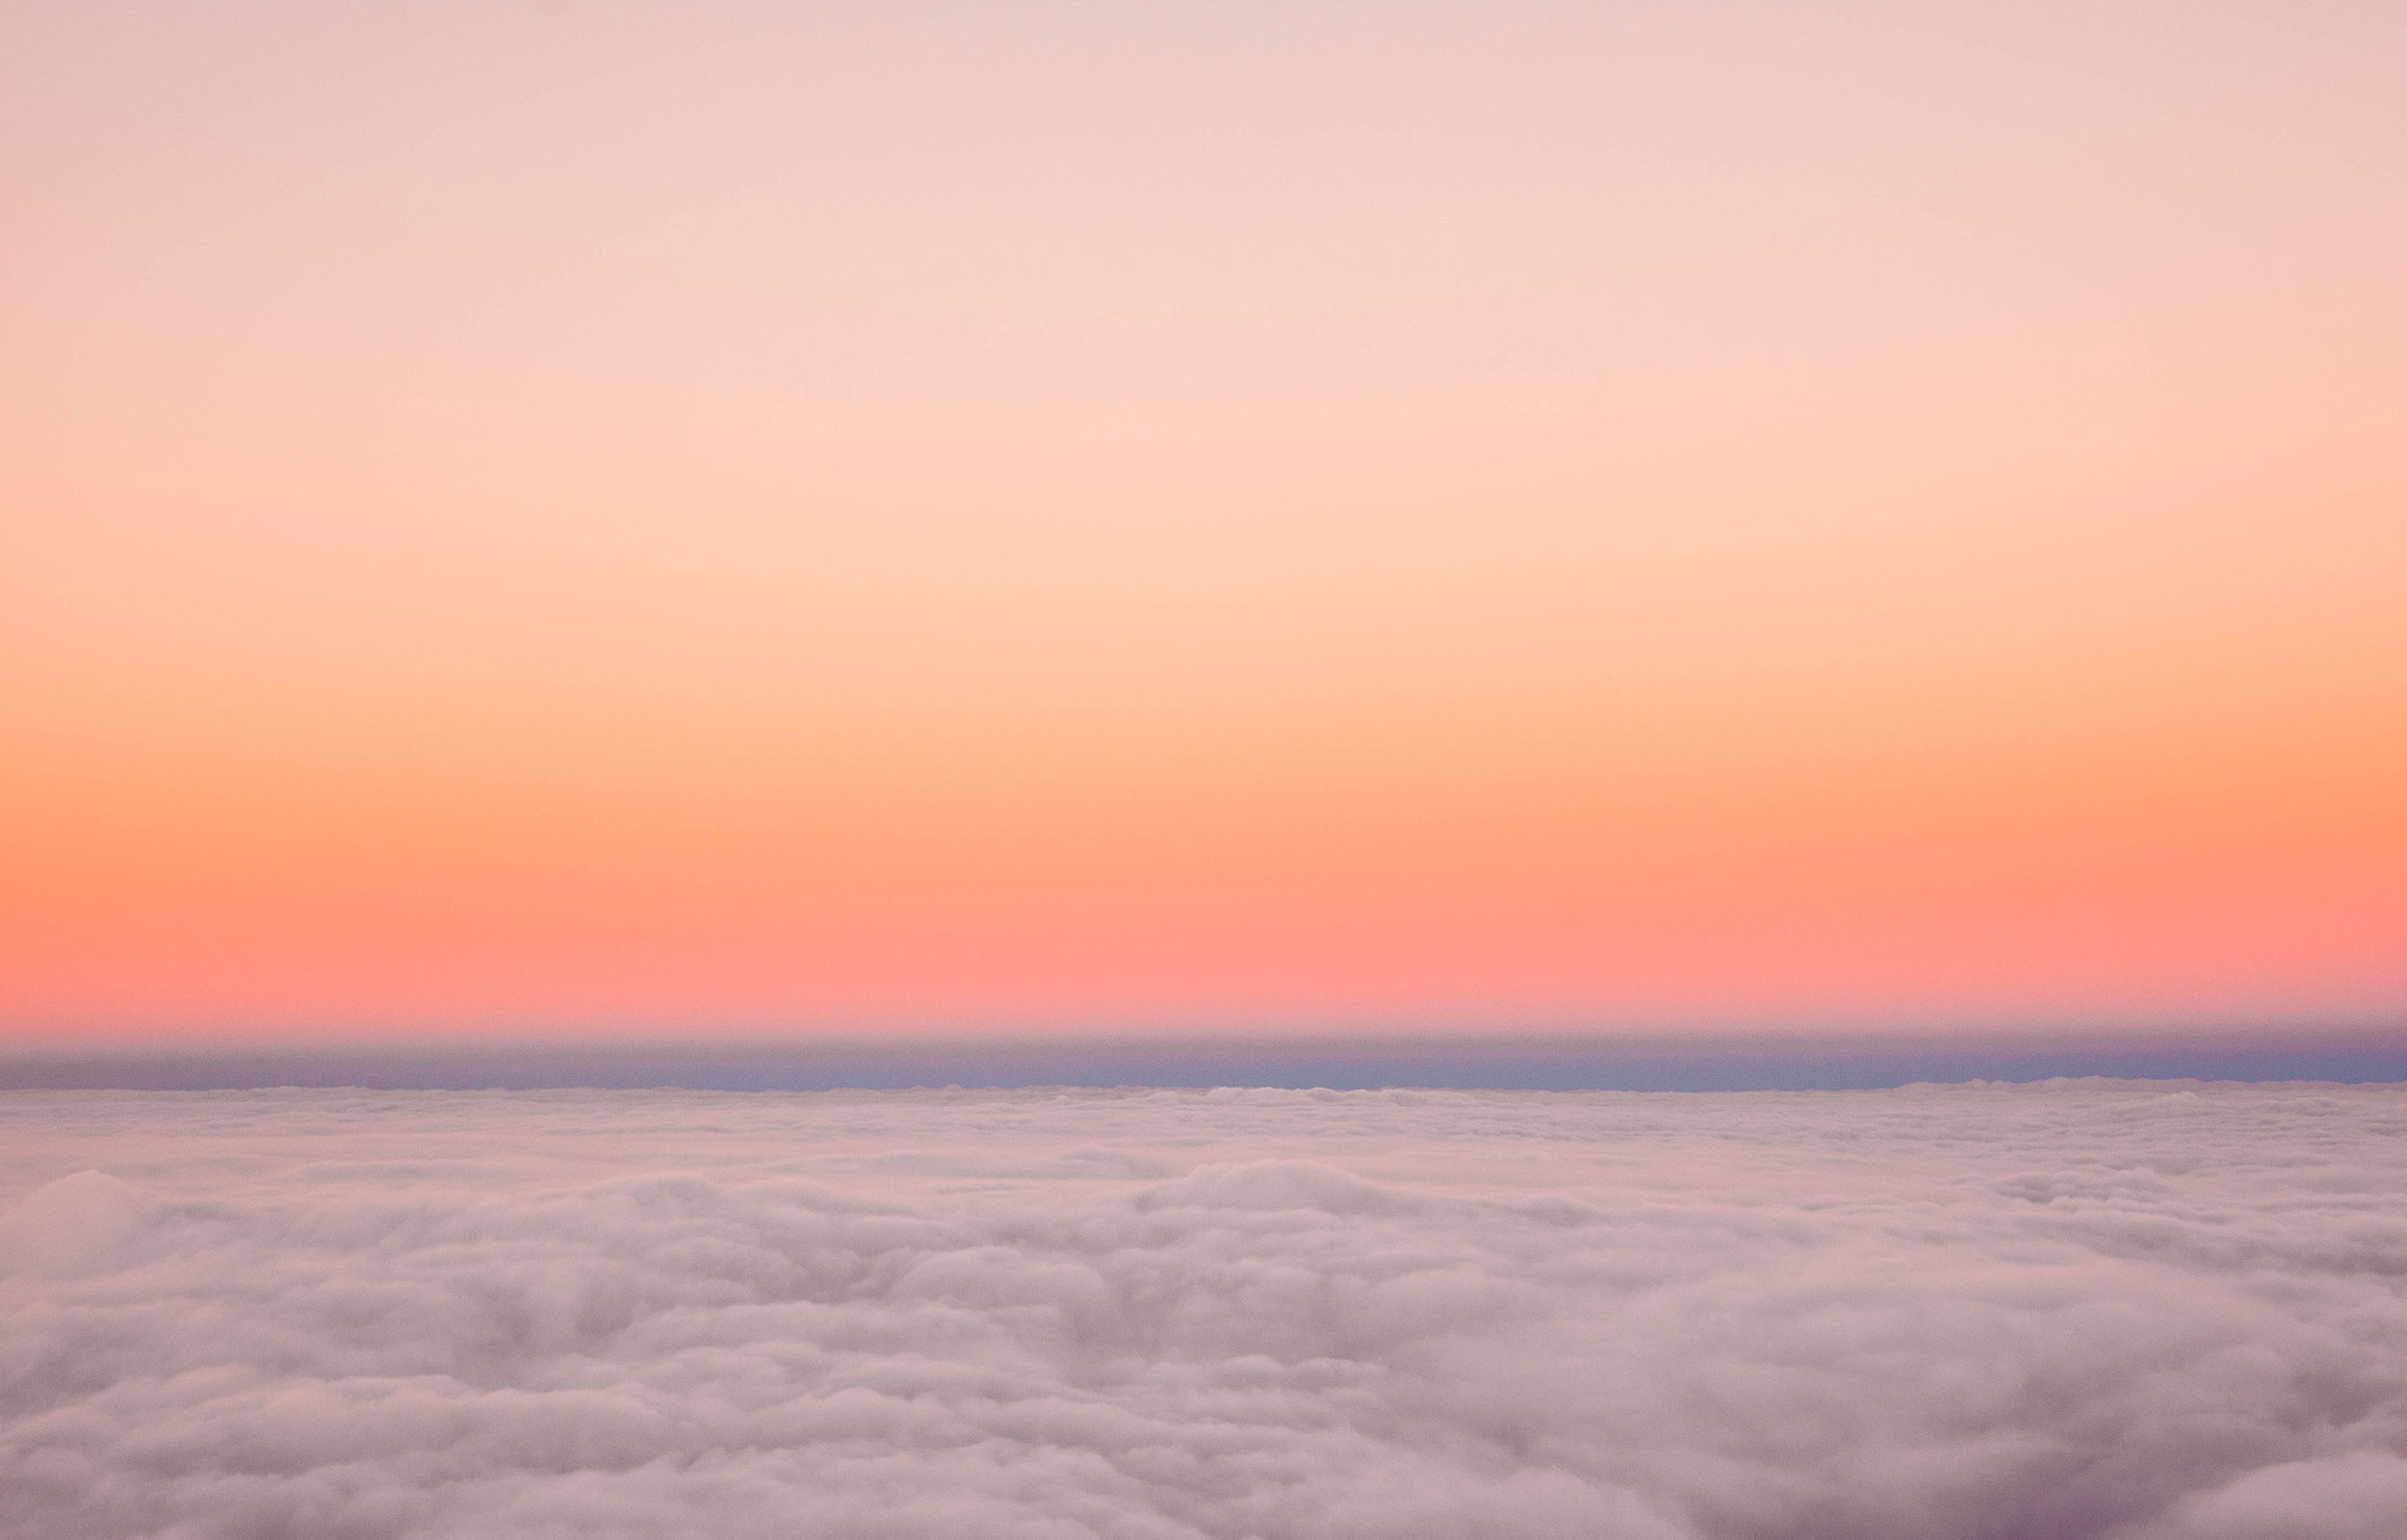 An orange, pink and purple sunset sky from above the clouds